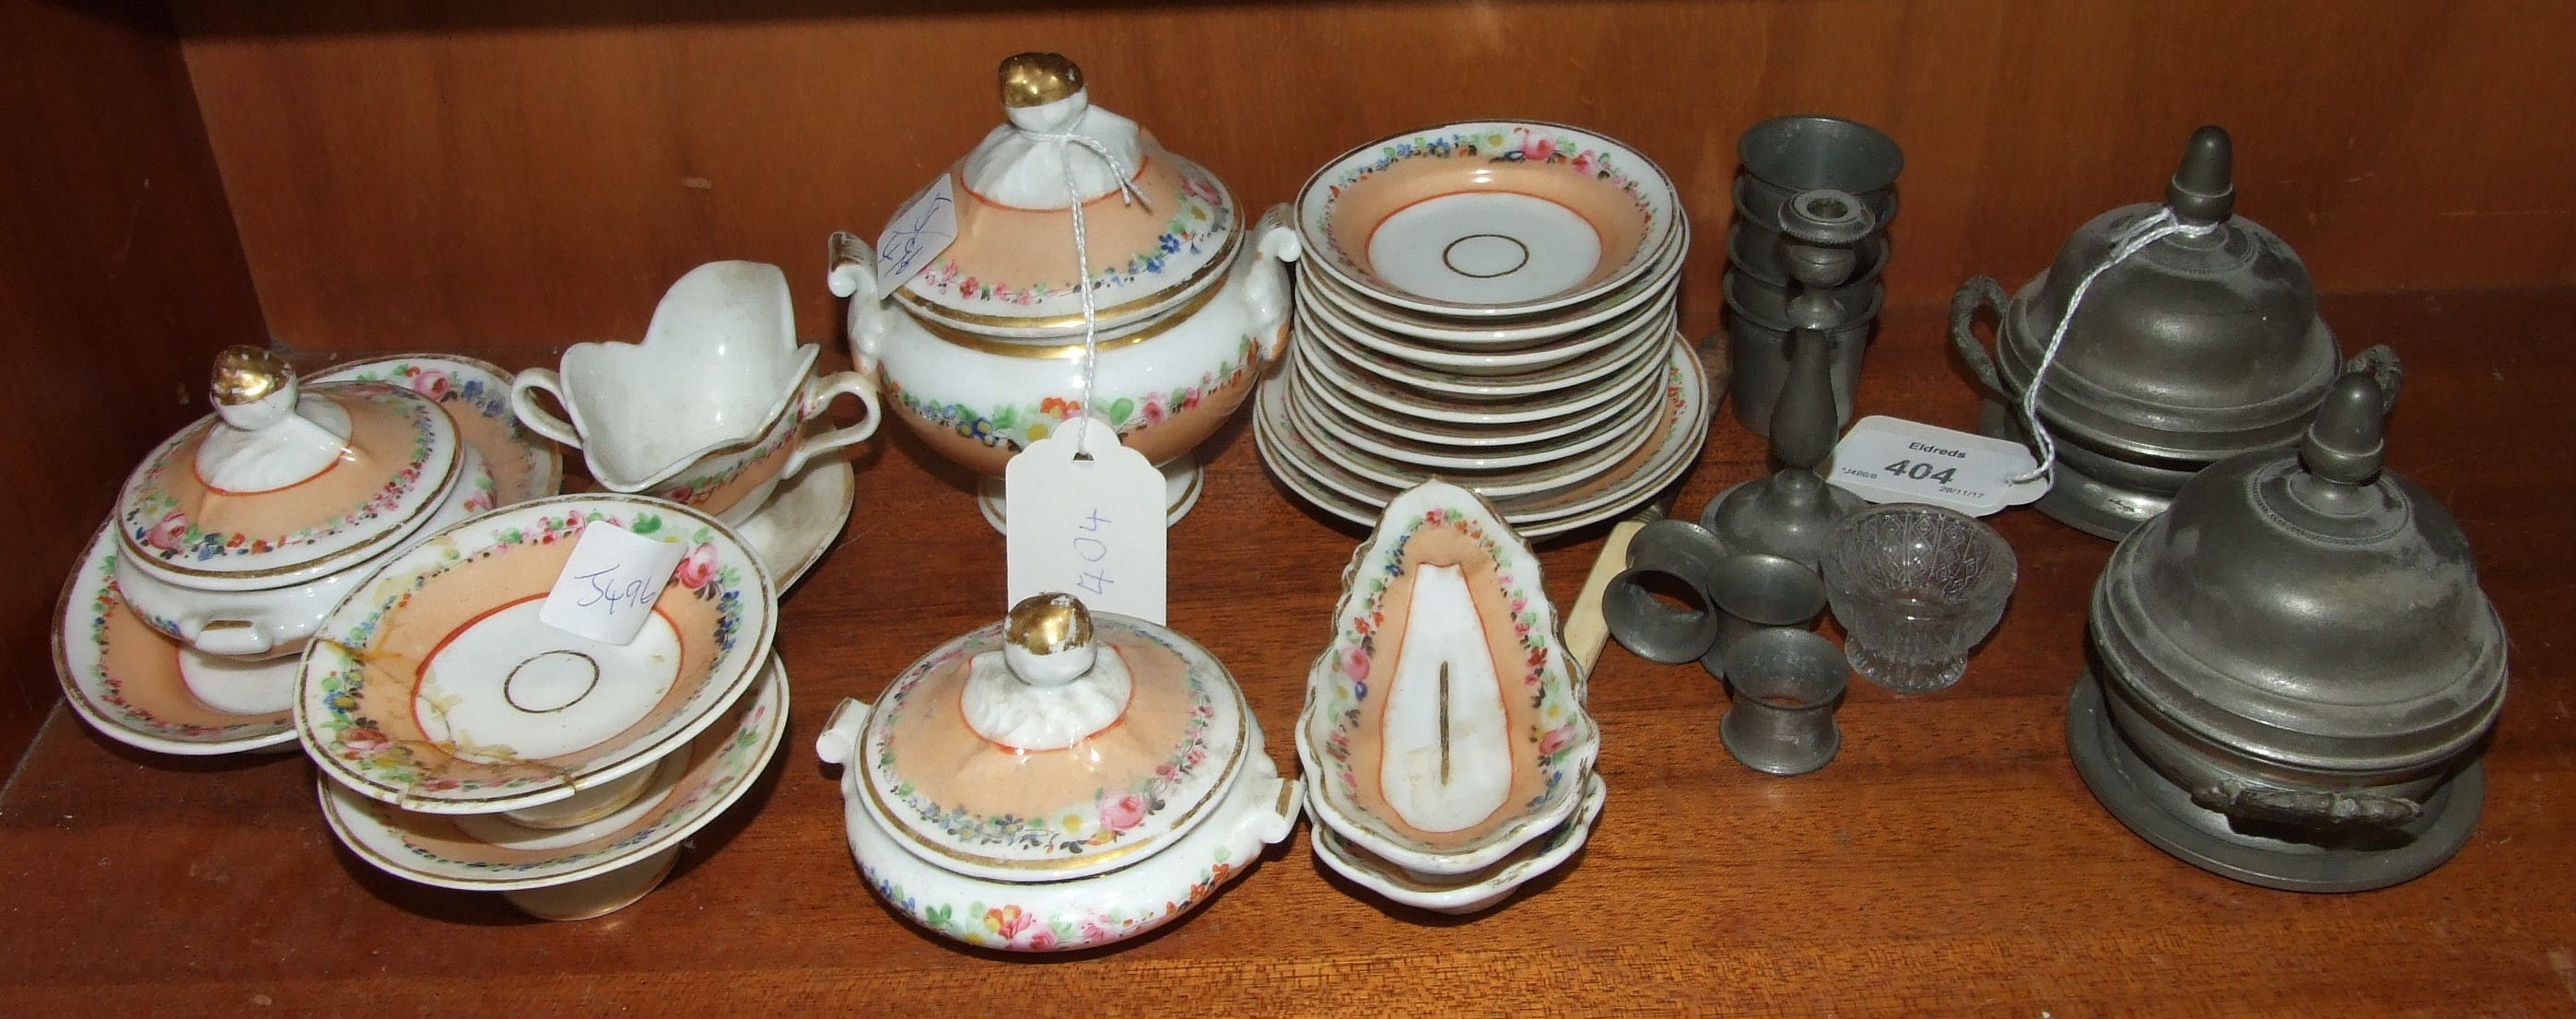 Lot 404 - A 19th century porcelain part tea service for a doll together with a pair of pewter tureens and